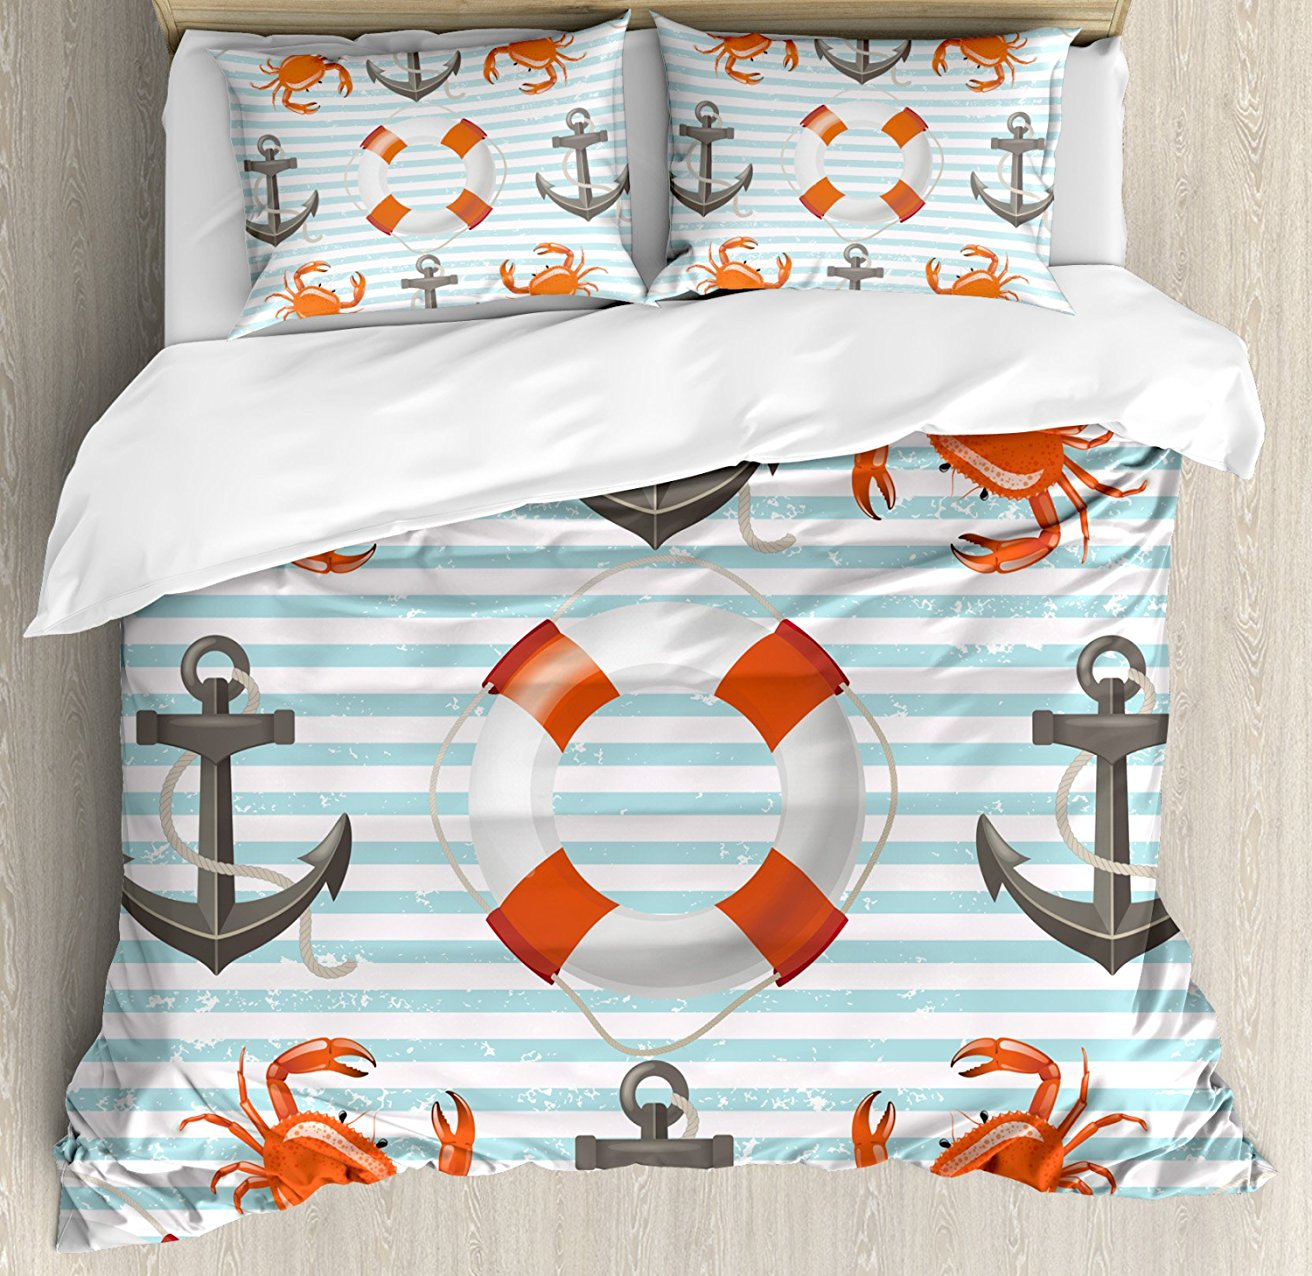 Nautical Duvet Cover Set, Life Rings Anchor And Ropes Ocean Crabs Coastal Theme Teal Striped Print, 4 Piece Bedding Set